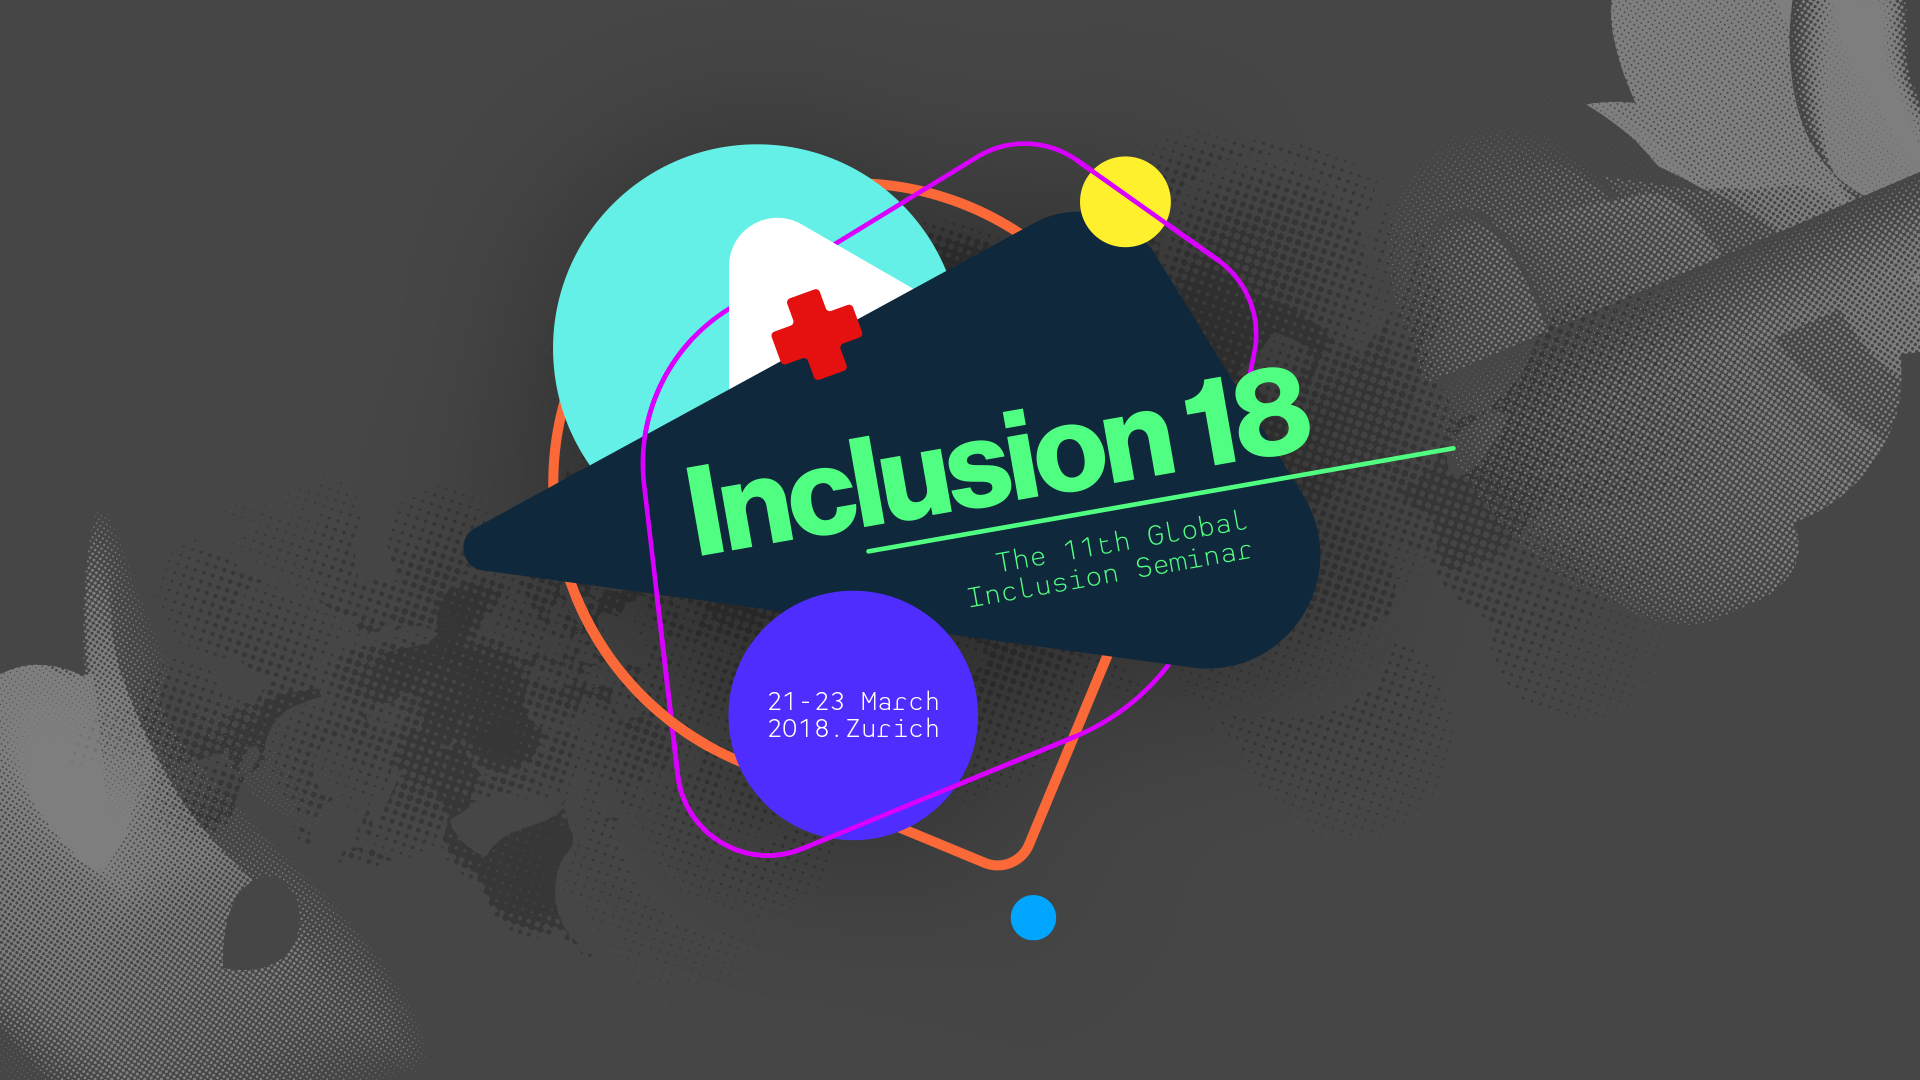 INCLUSION 18 - 11th Global Inclusion Seminar - GBP